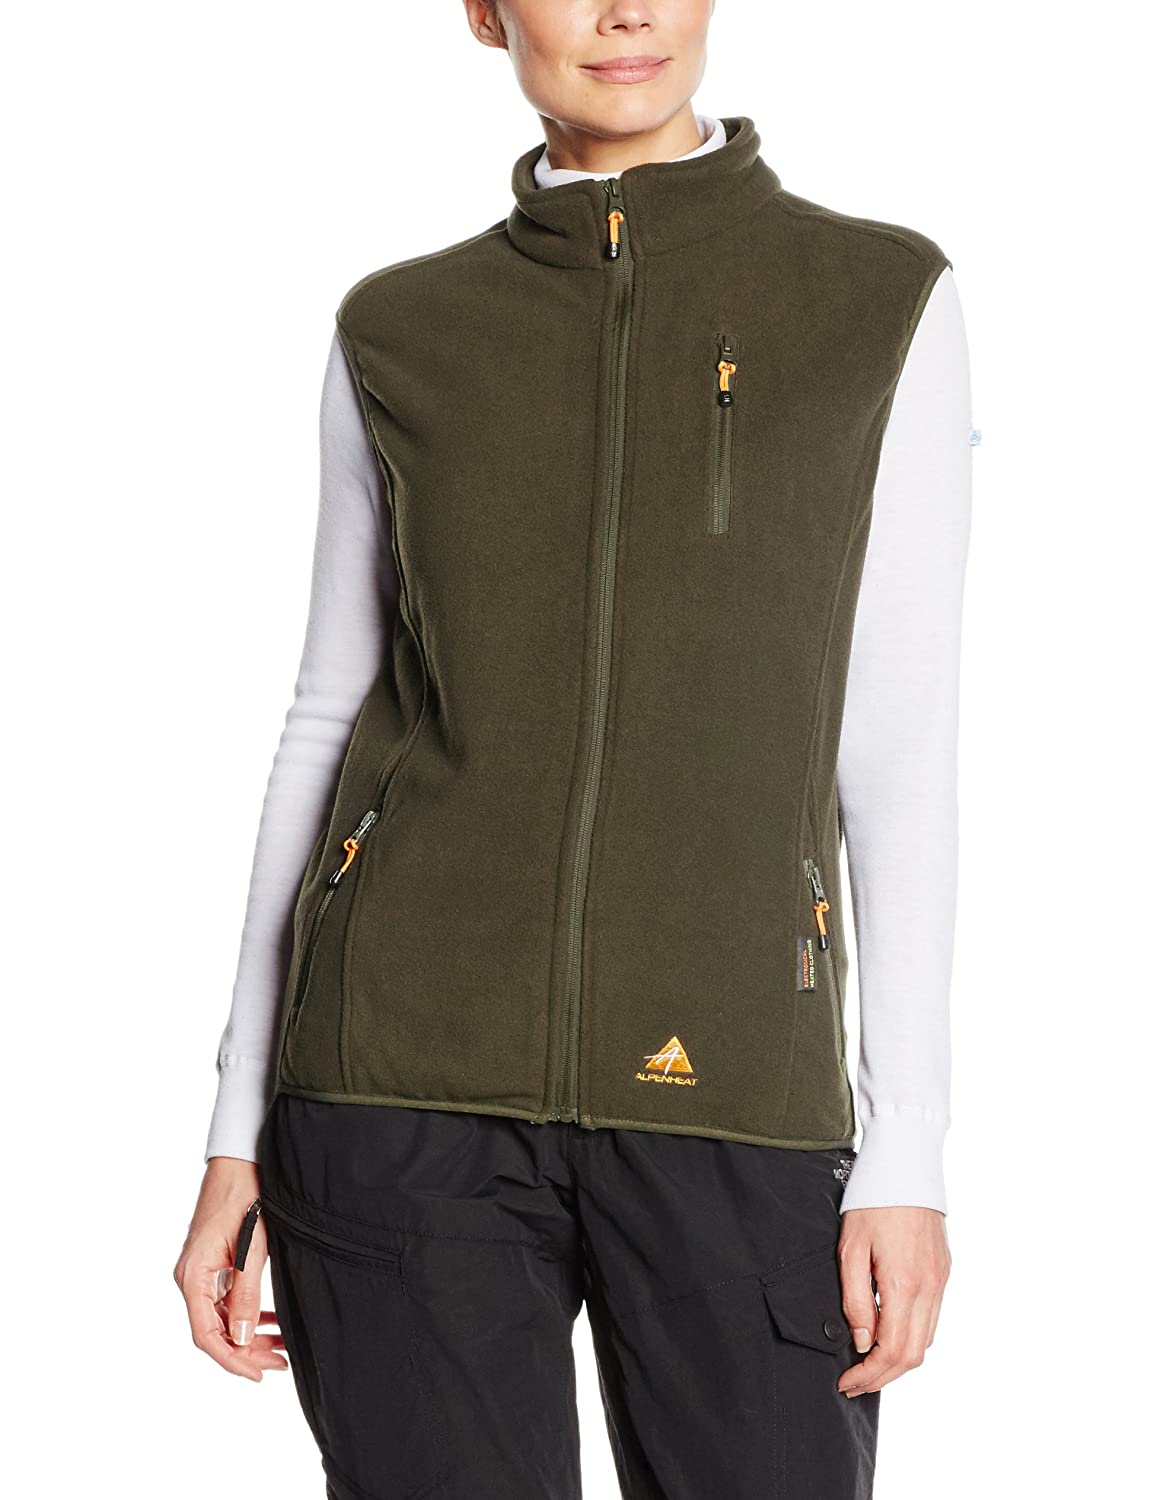 Alpenheat Firevest Heated Vest Fleece Mixte KQQ21|#Alpenheat